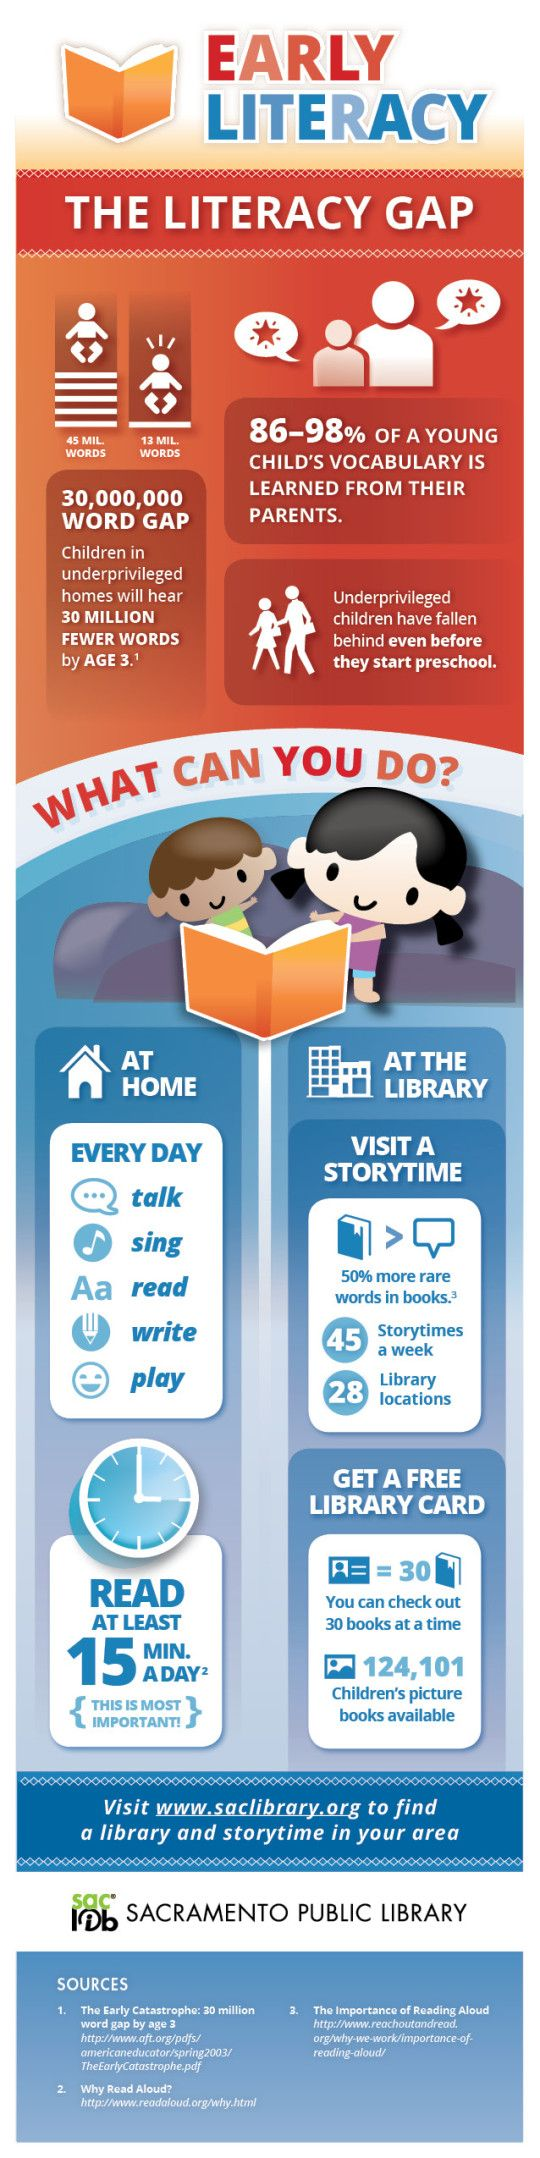 Early literacy - everything kids know about reading&writing before they learn to read&write